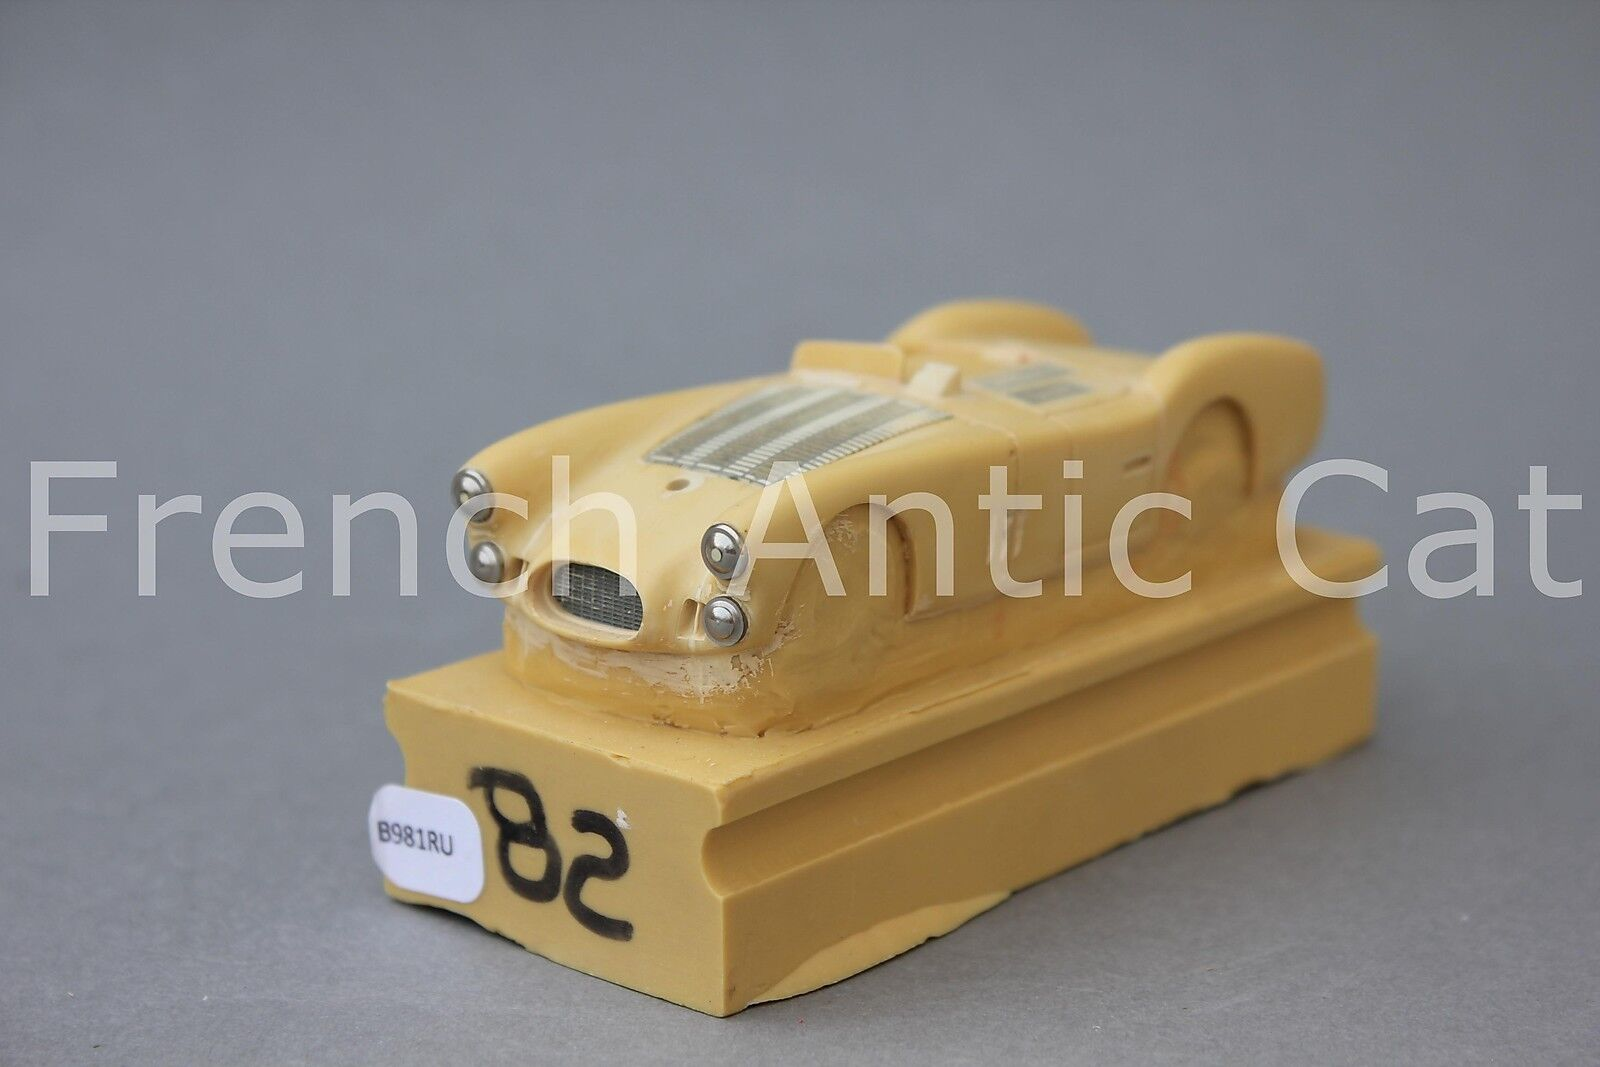 Rare matrice moule résine Talbot LM 1/43 Heco modeles voiture véhicule RU